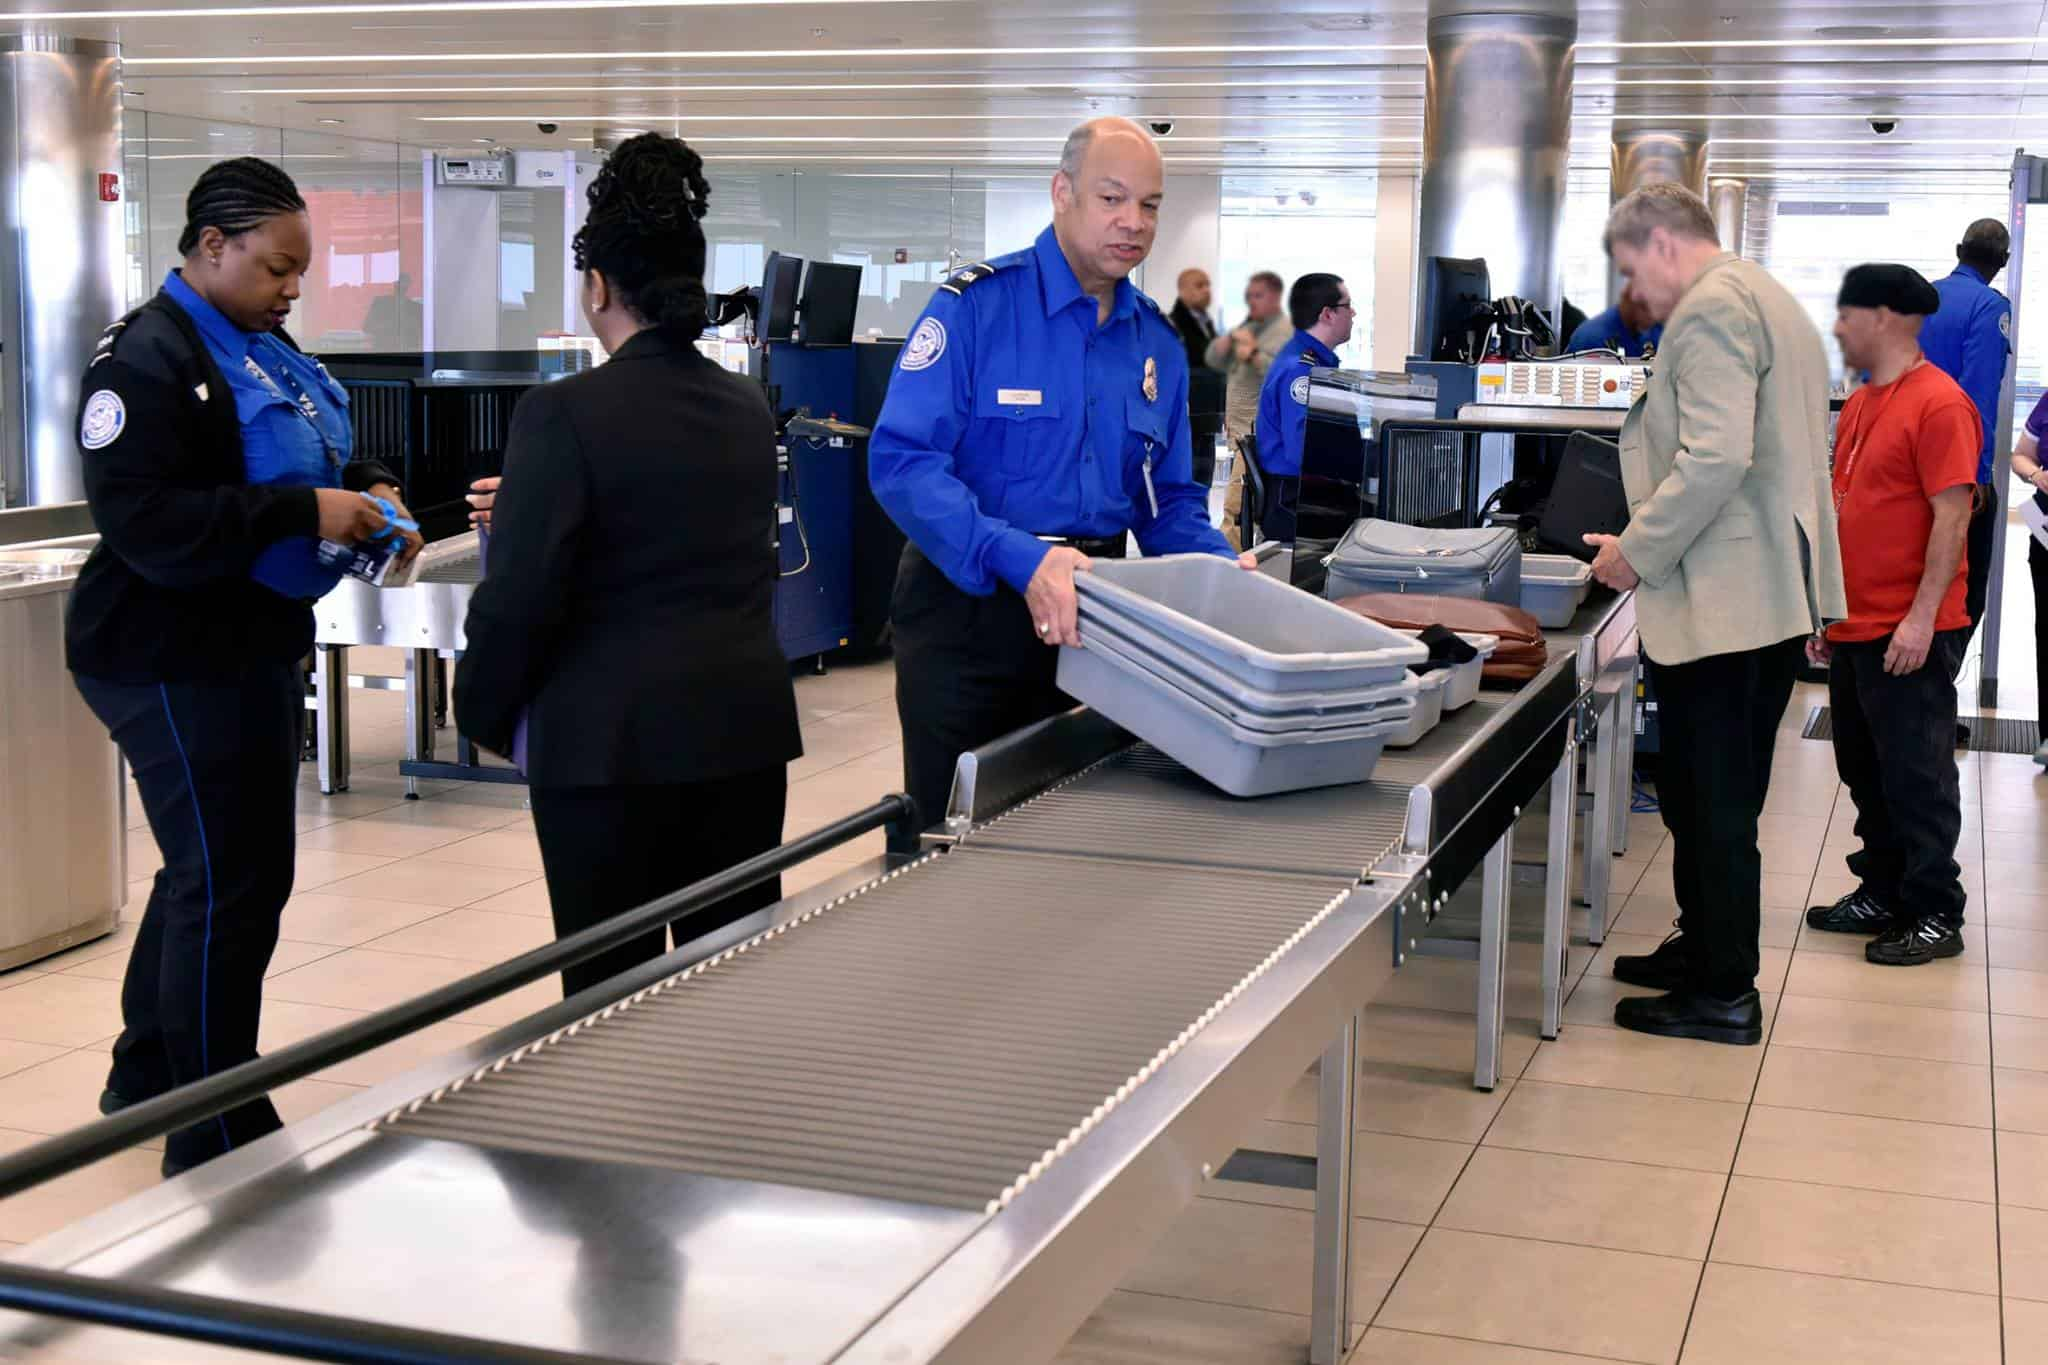 The TSA Wants To Completely Eliminate Security Checkpoints In 34% Of US Airports